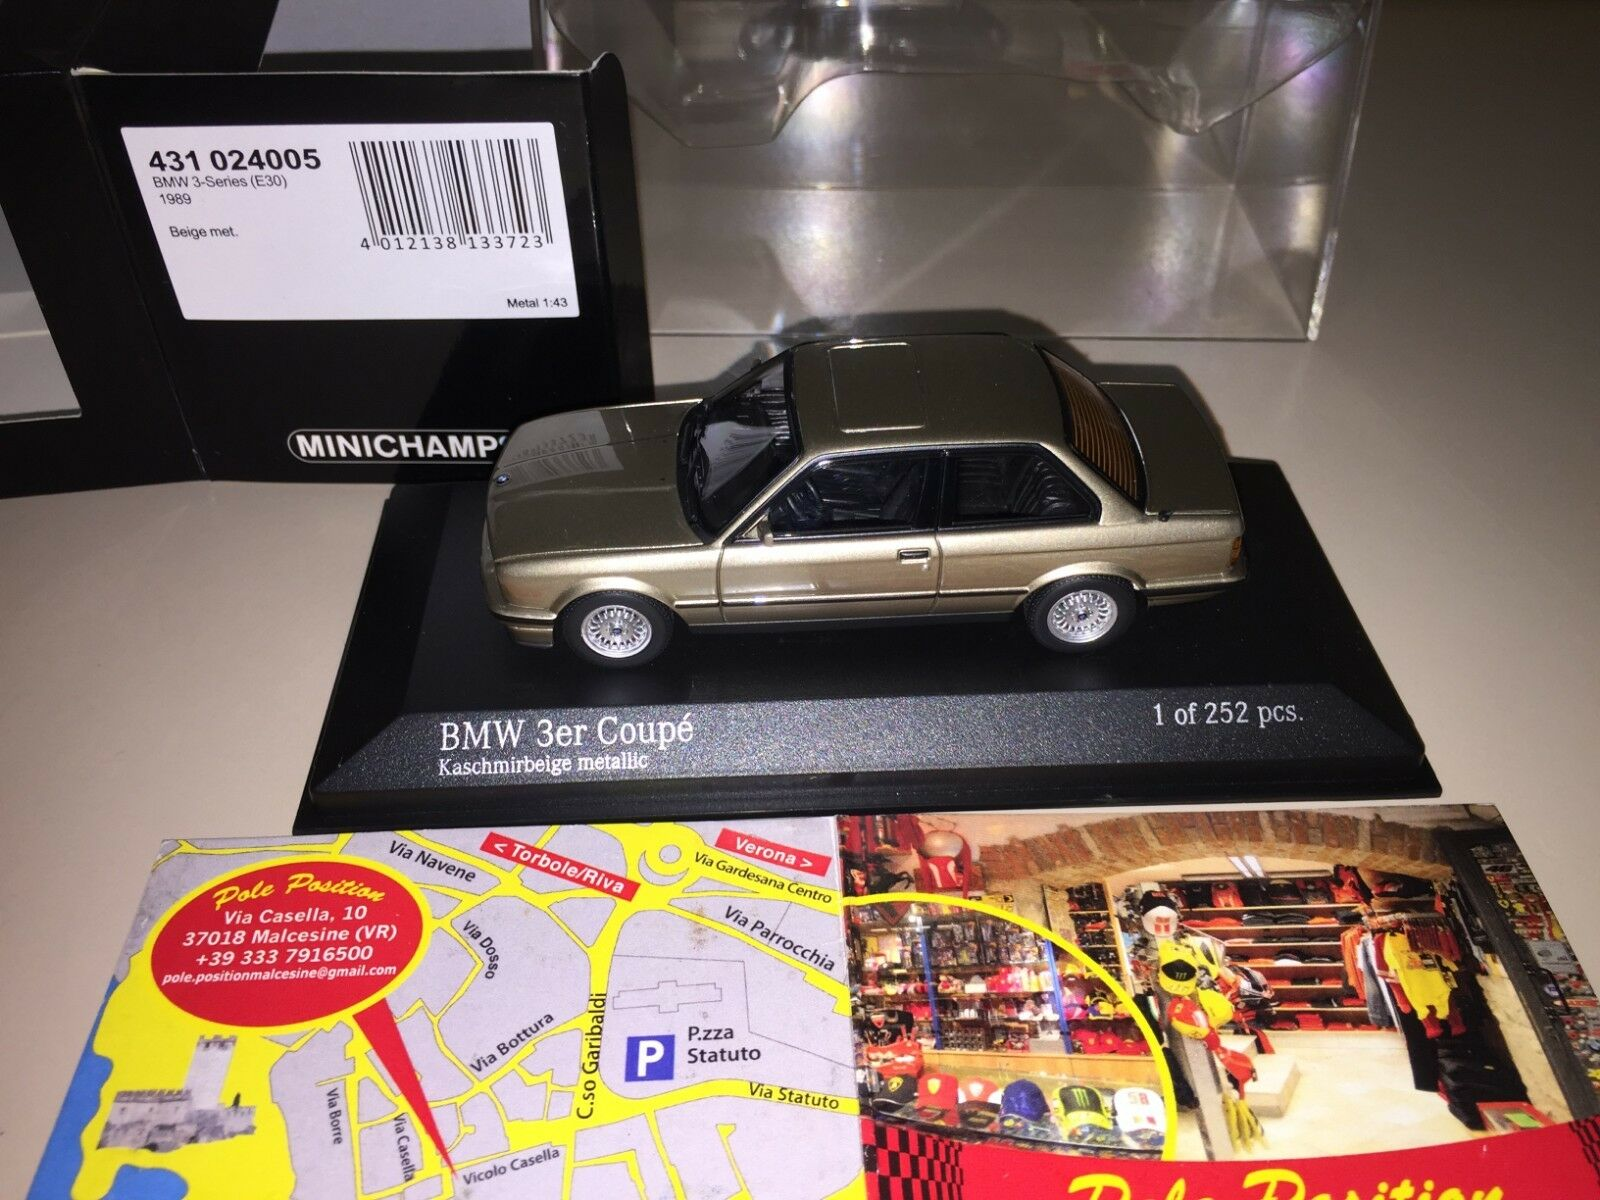 431024005 MINICHAMPS 1 43 BMW 3 Series COUPE E30 BEIGE LIM 252 PCS NEW MEGA RARE